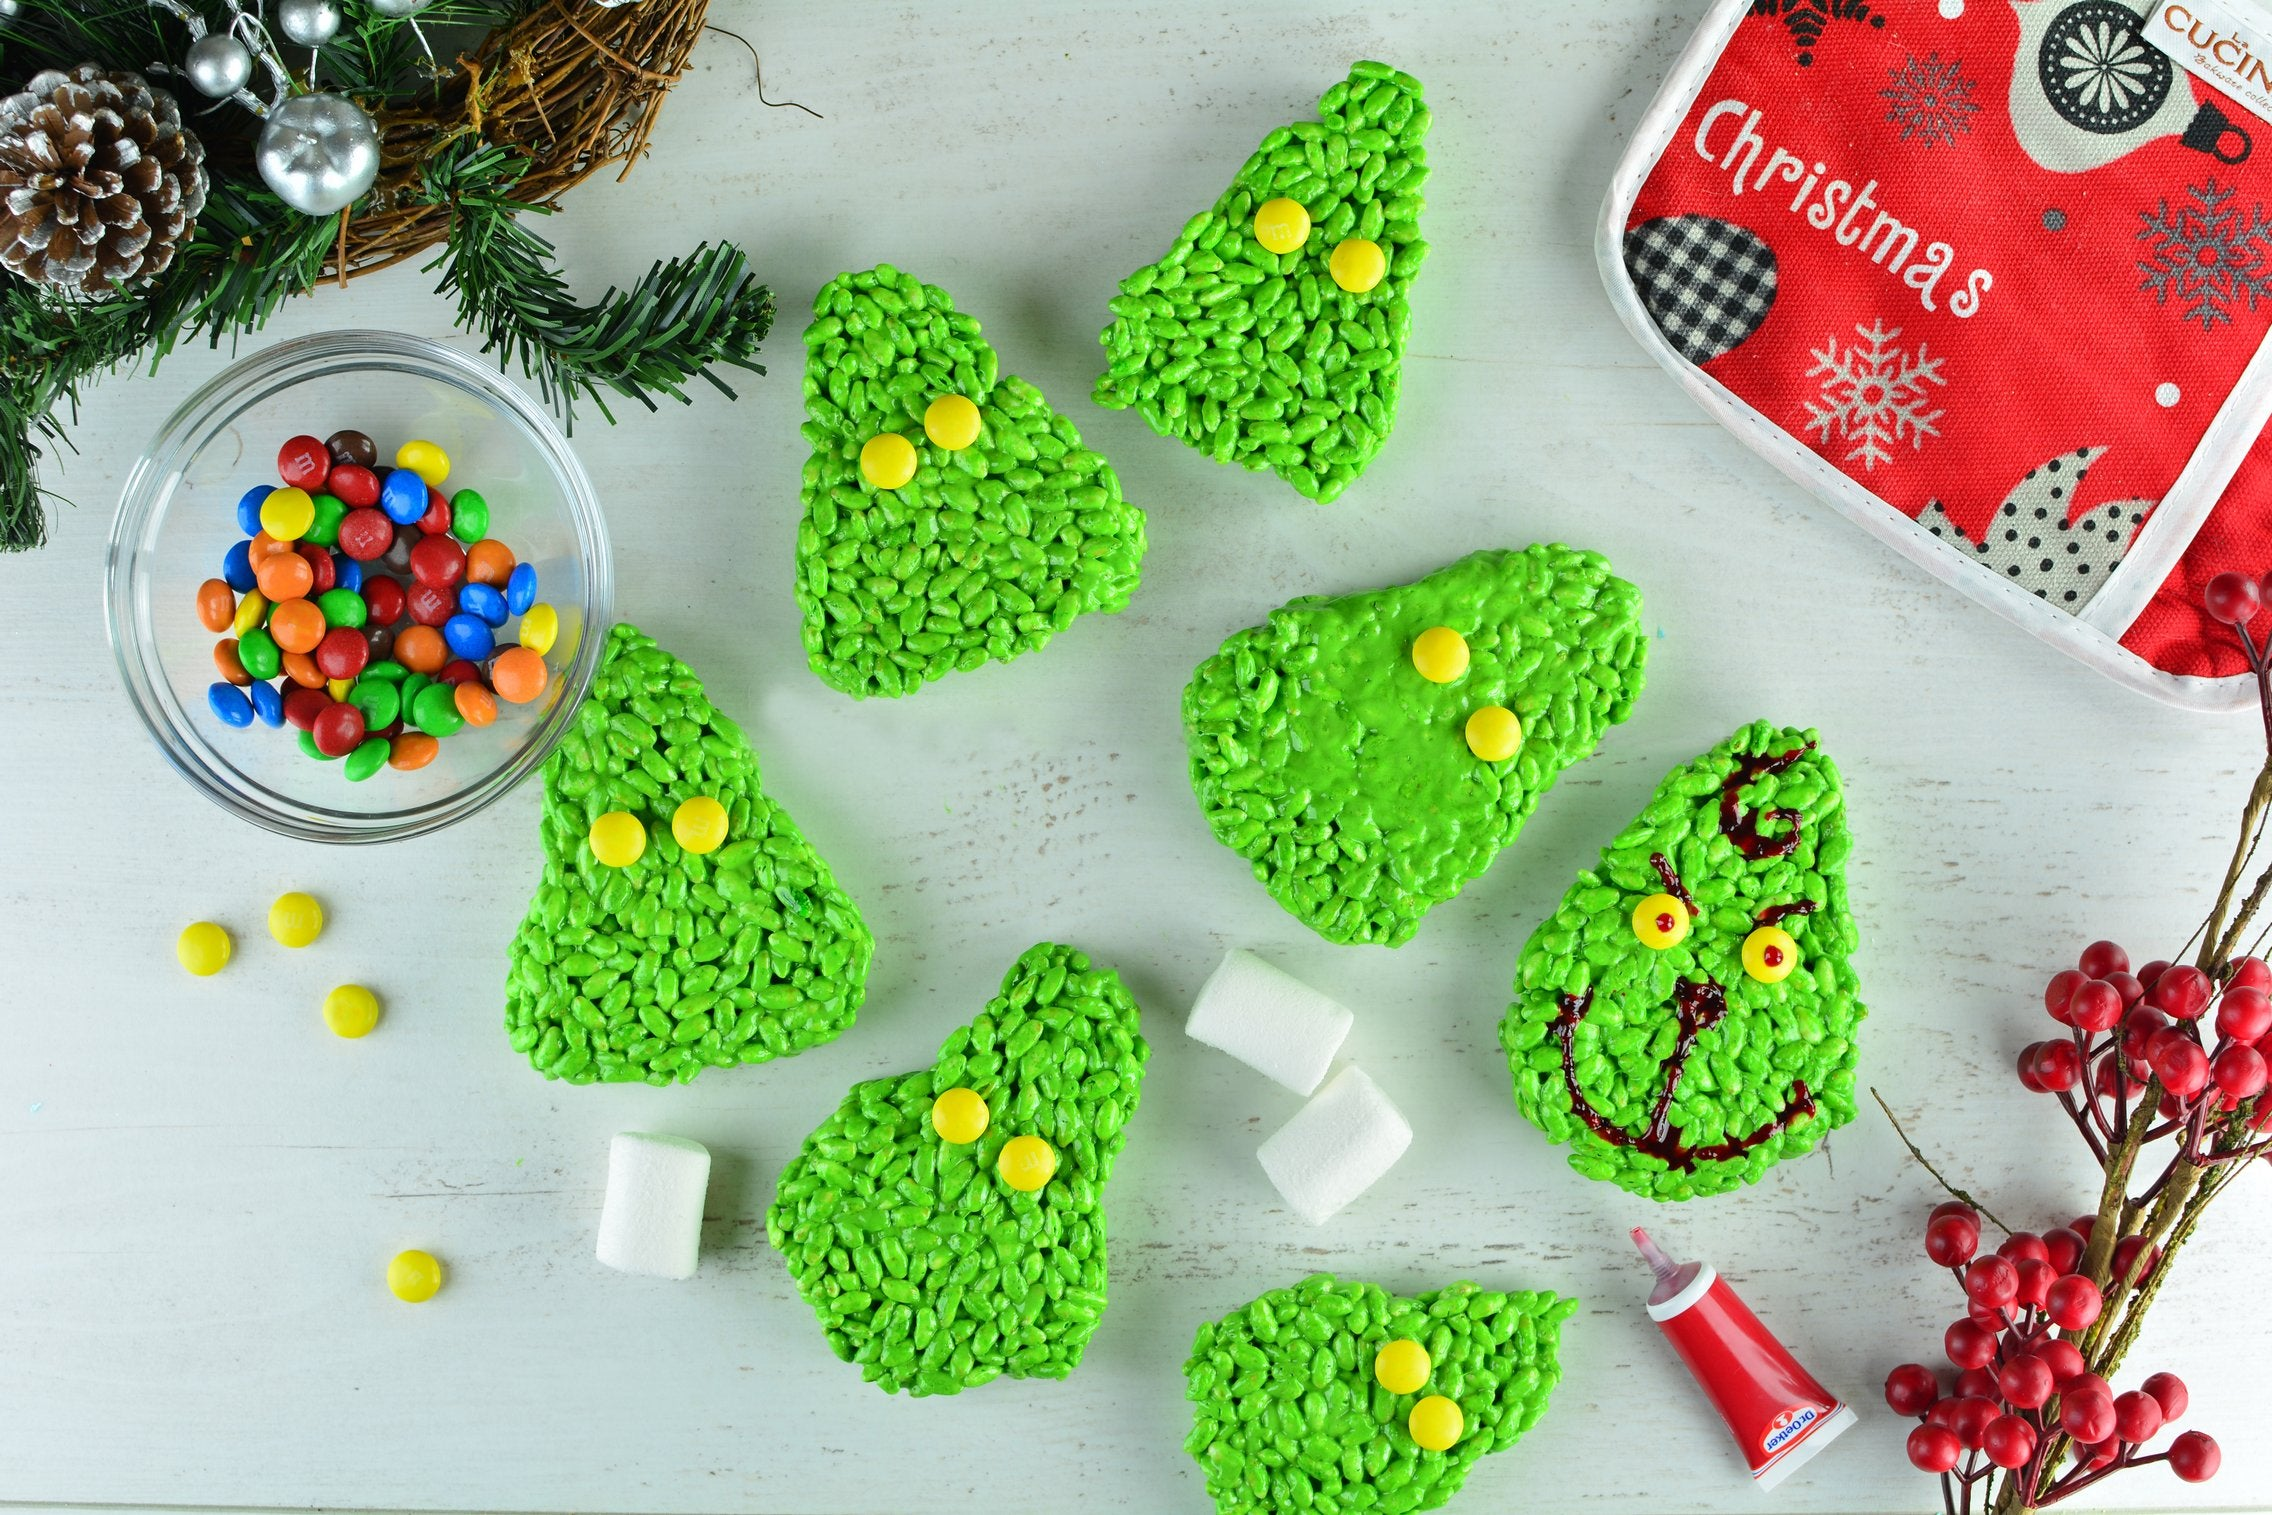 marshmallow-matcha-grinch-cookies-with-m-m-s-decorating